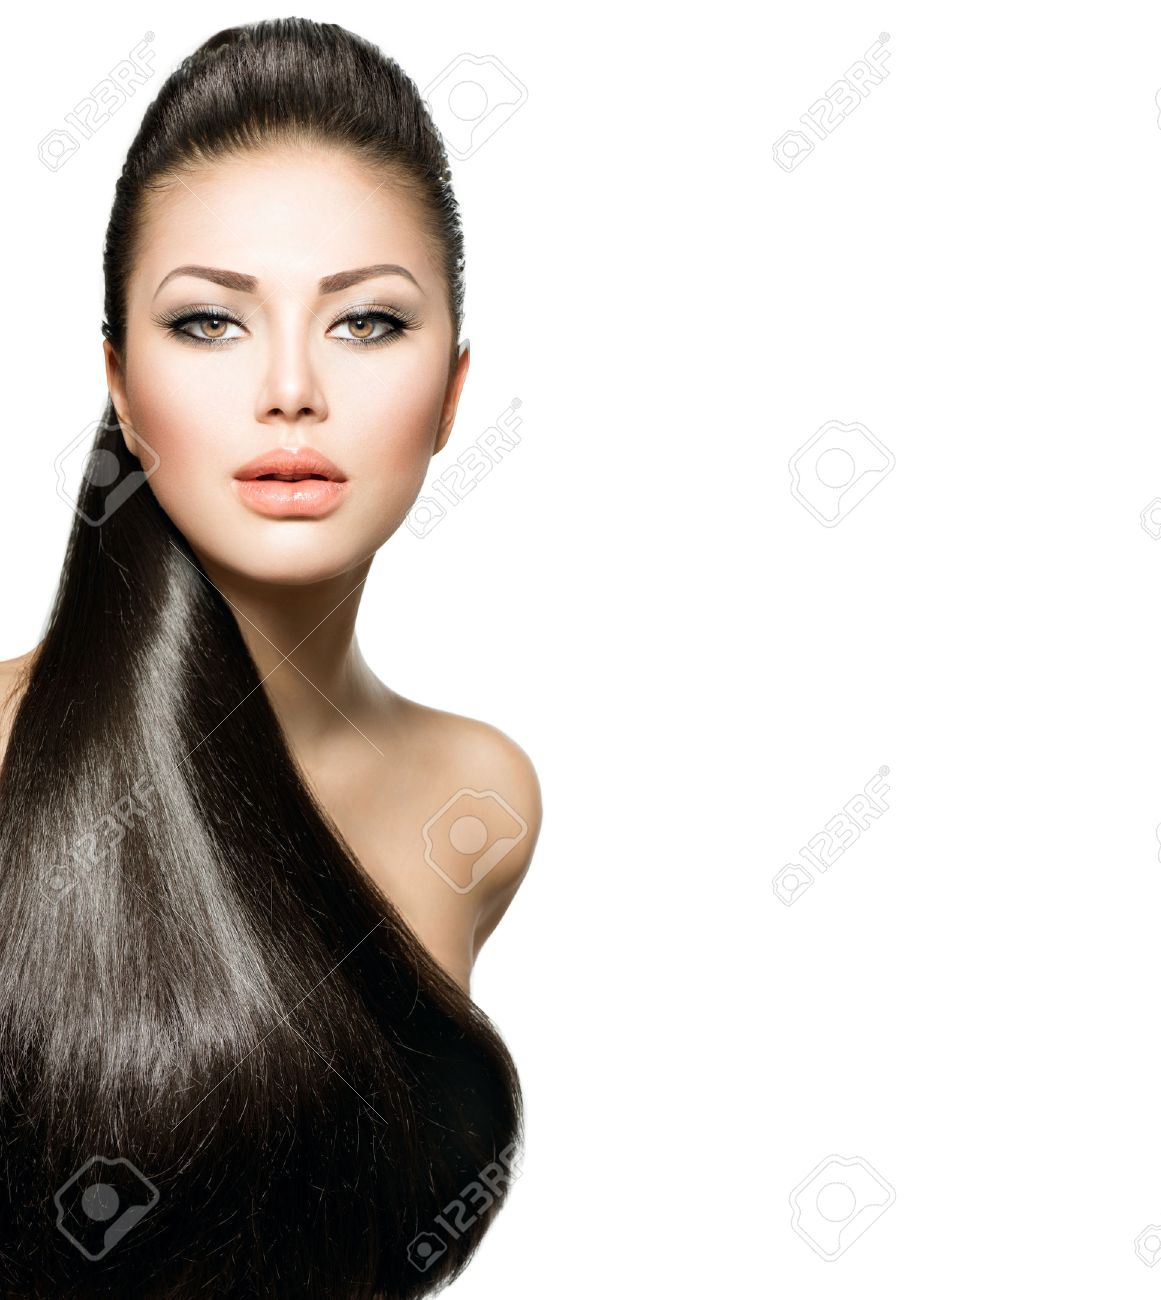 Fashion Model Girl with Long Healthy Straight Hair Stock Photo - 25594304